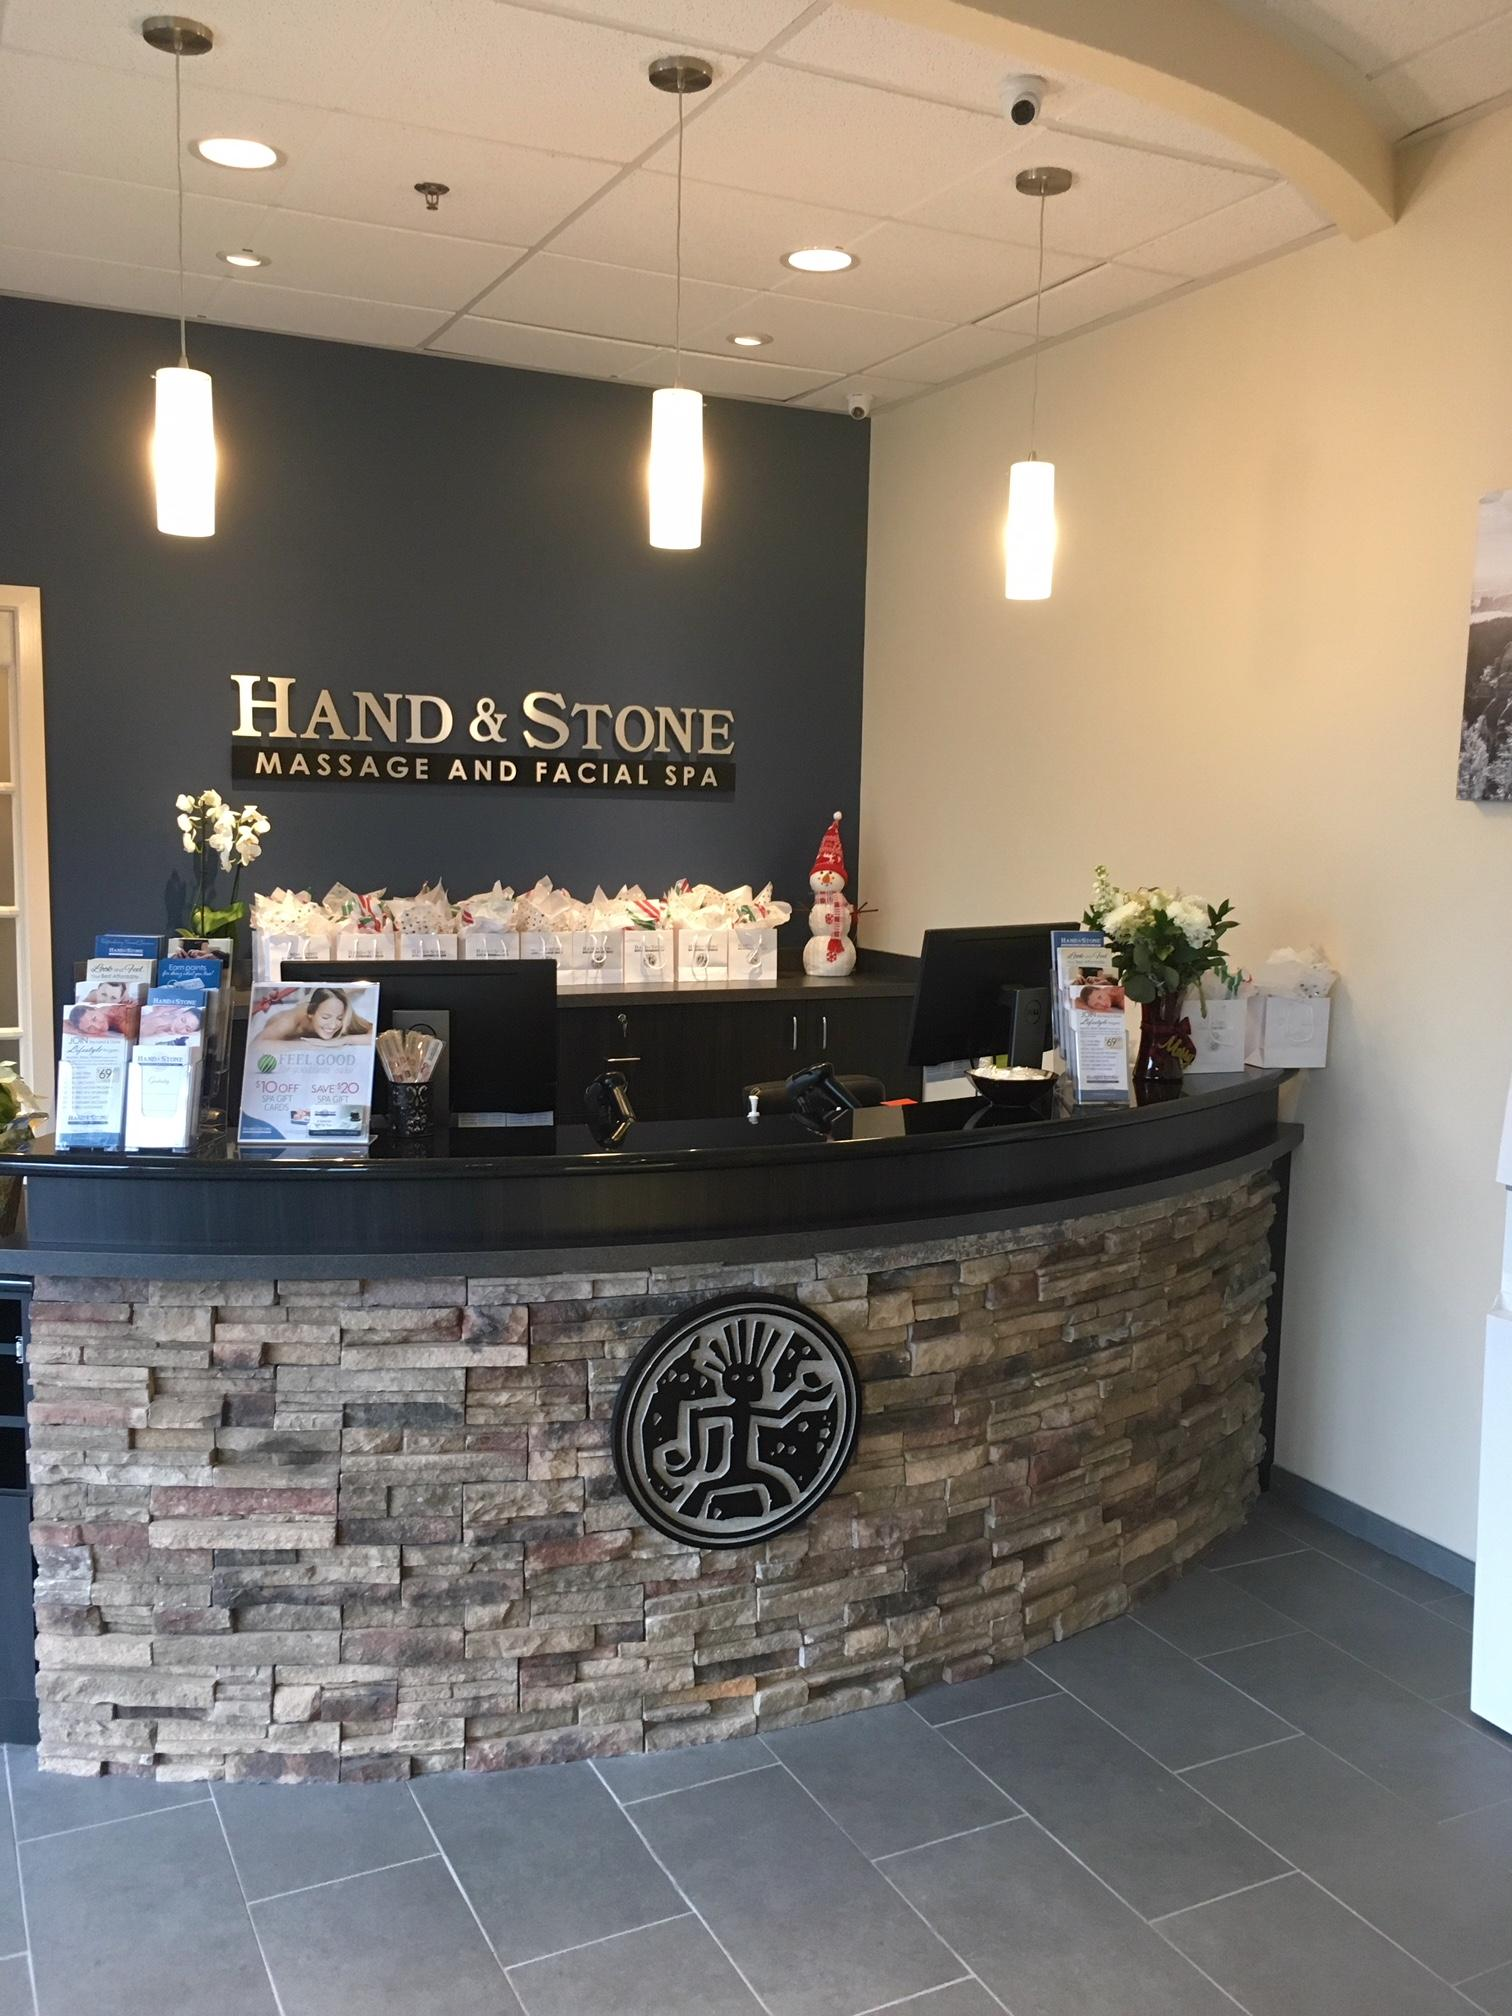 Hand & Stone Massage and Facial Spa - Kirkland WA